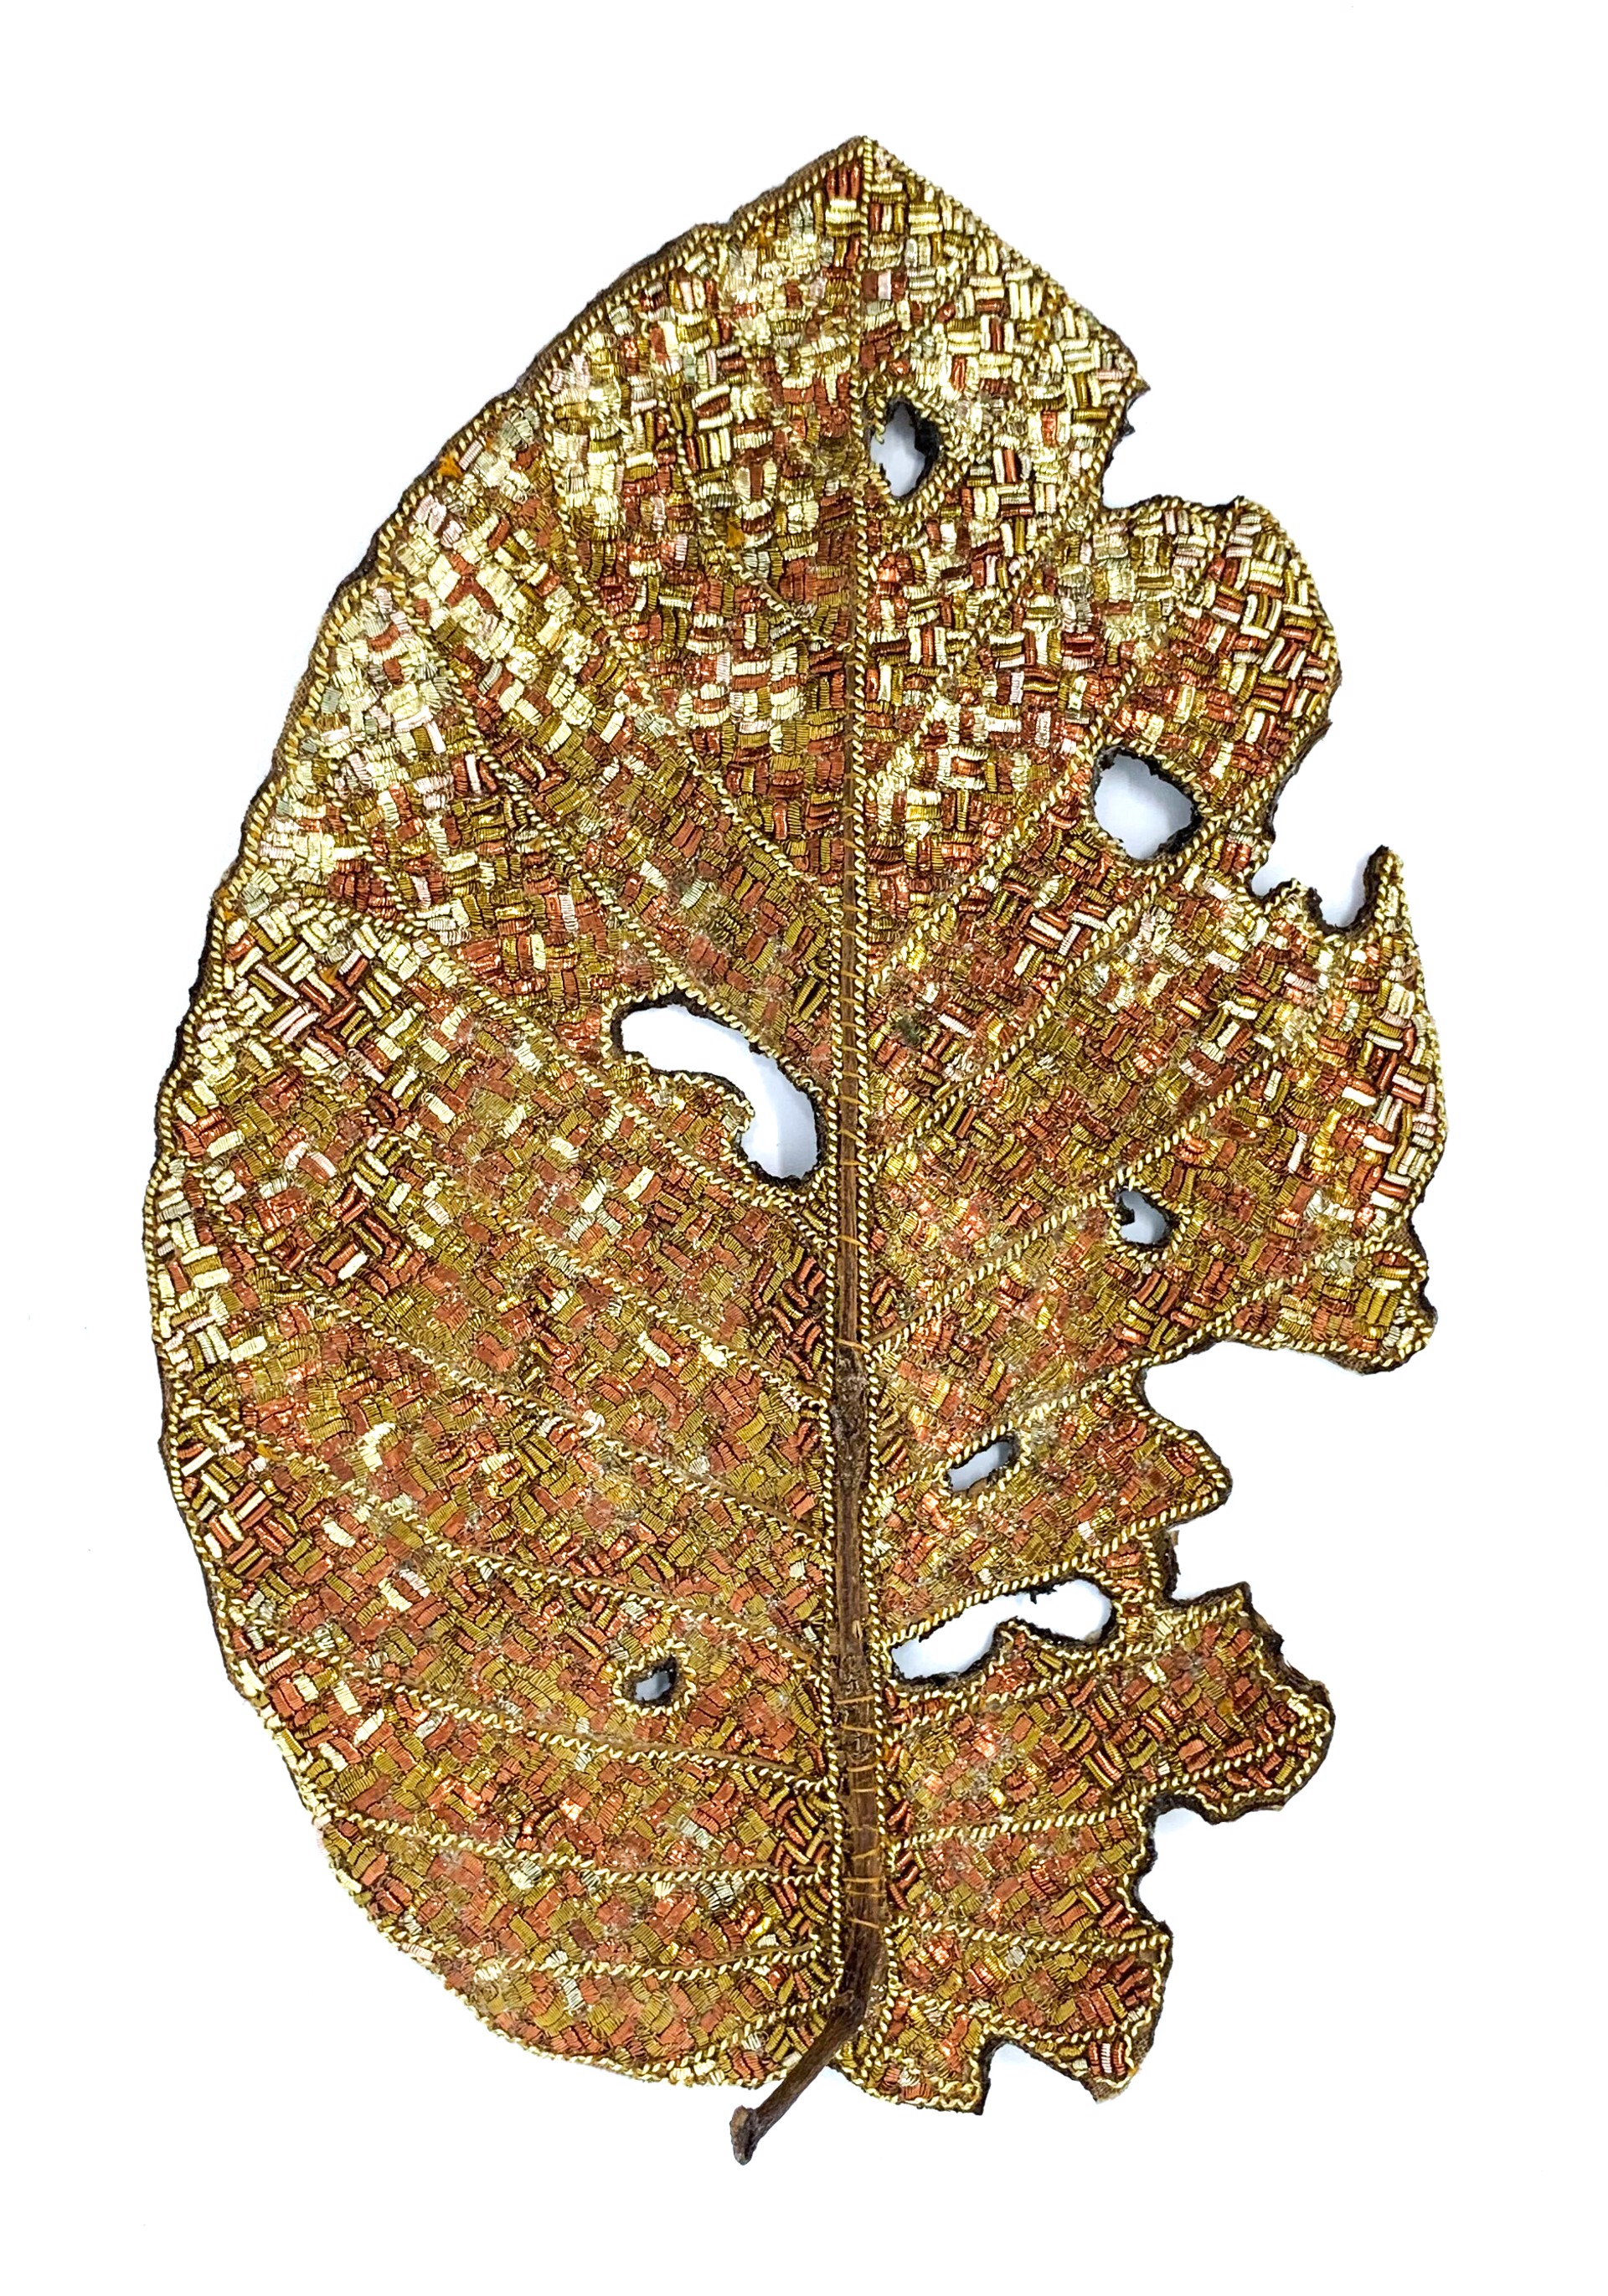 The Impermanence of Life: Rosewood Leaf I by Tiao Nithakhong Somsanith